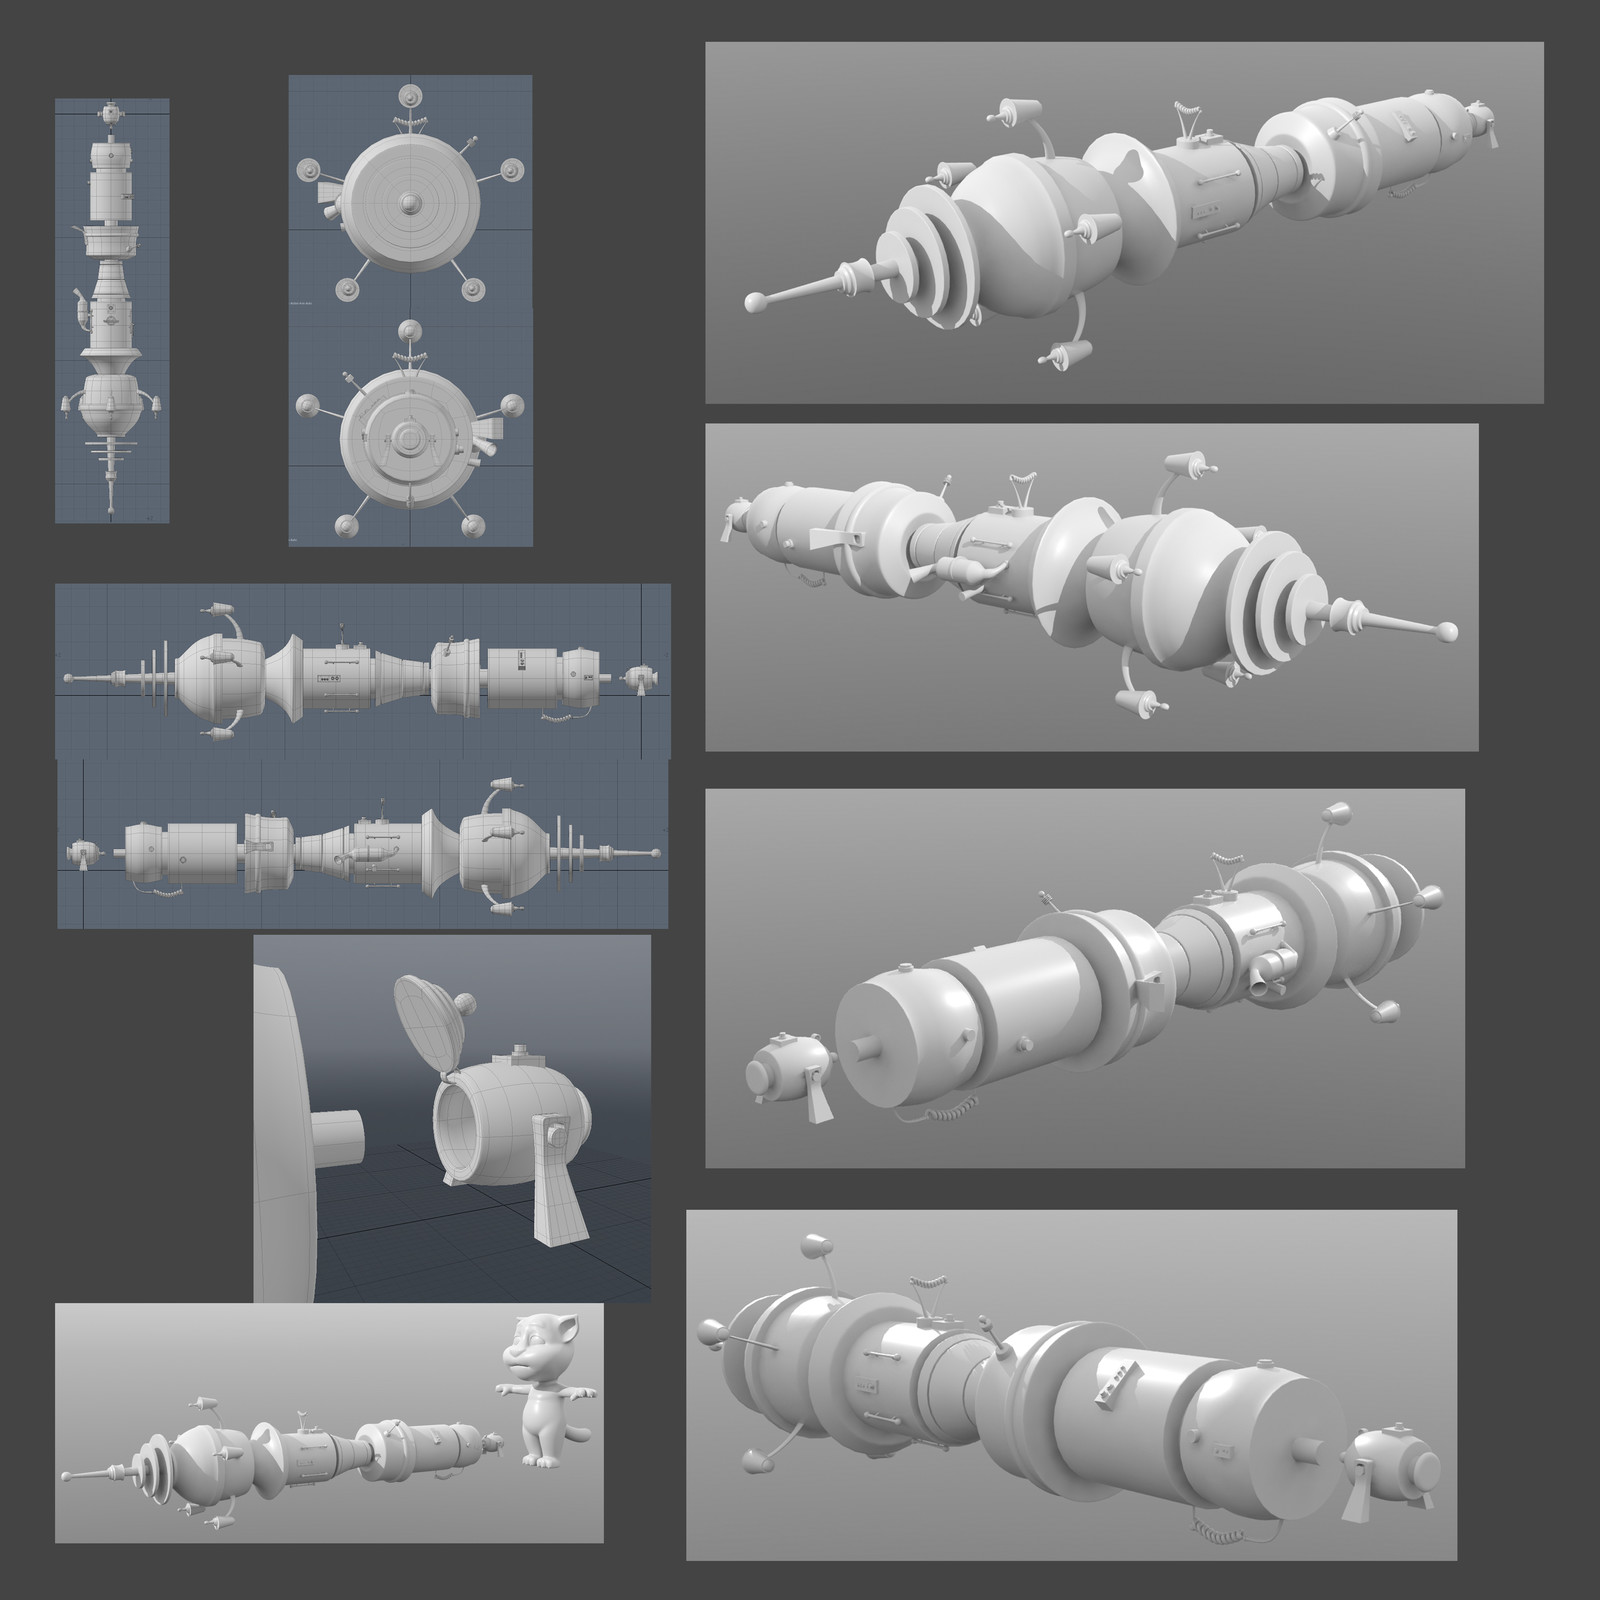 Concept, model, shading and texturing. Tom and ships models provided by Hampa Studio